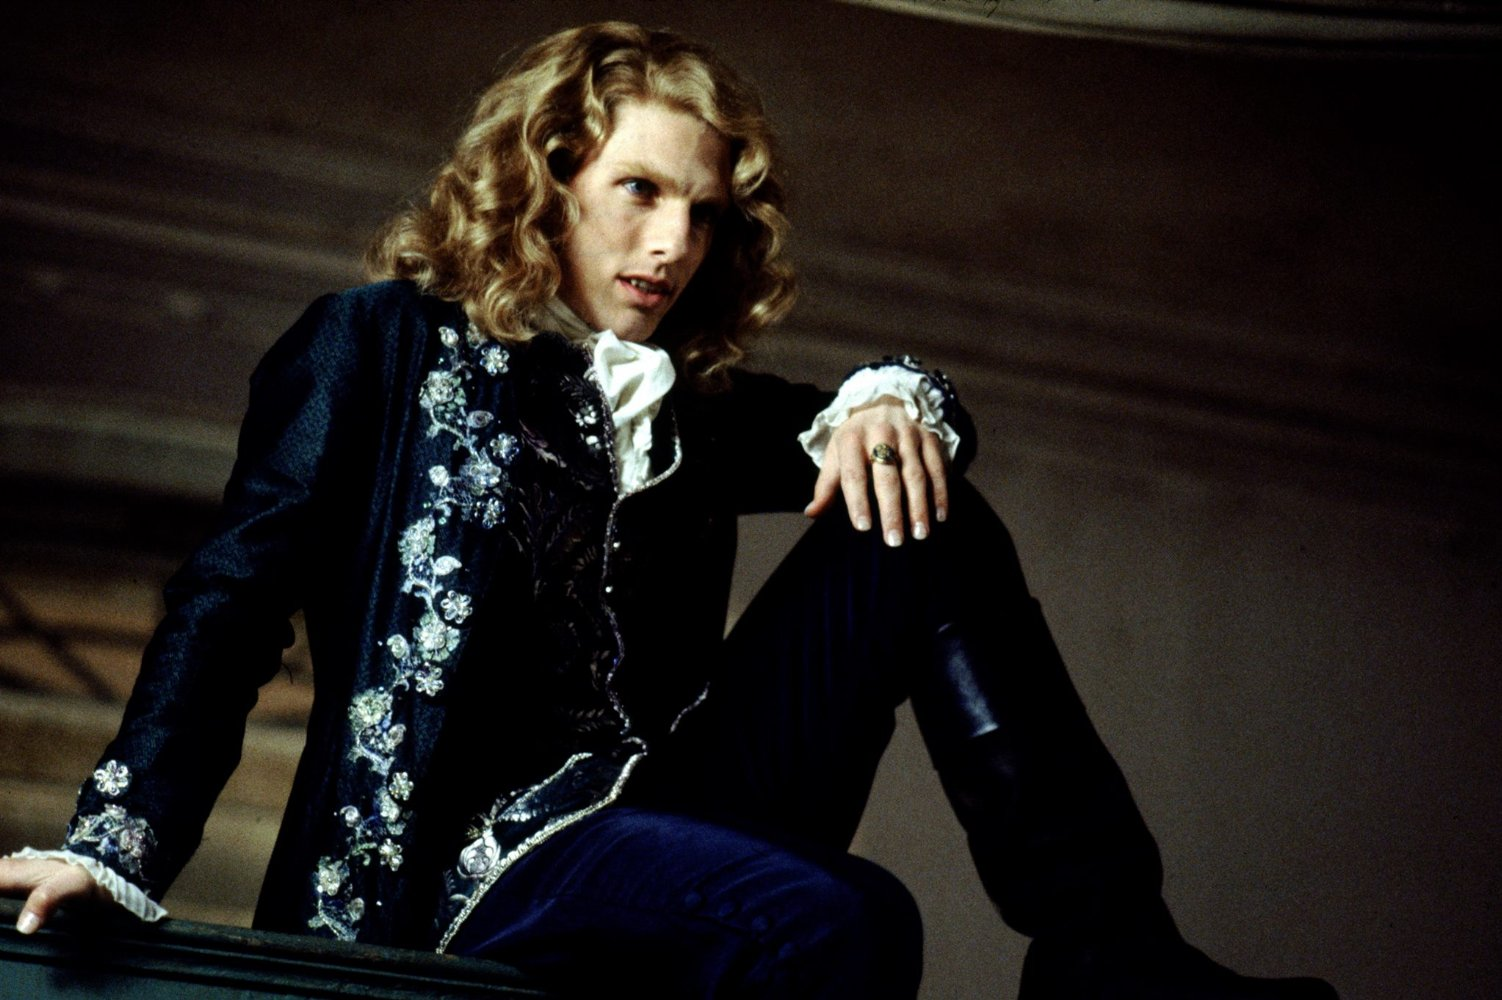 Interview With The Vampire The Vampire Chronicles 1994 Watch Online In Best Quality